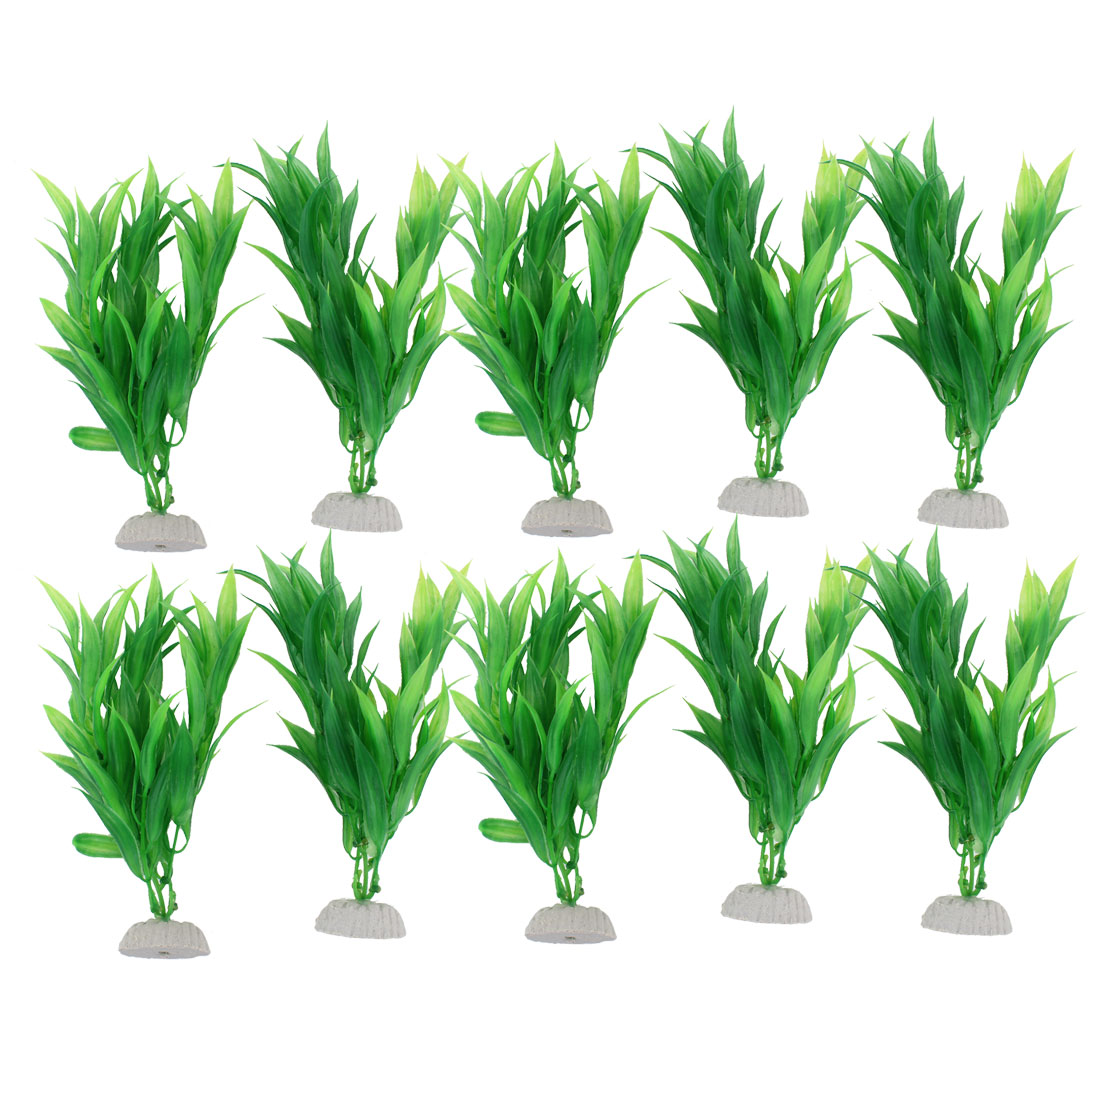 "10 Pcs Aquarium Fish Tank Green Artificial Plastic Plants Grass 8.5"" High"